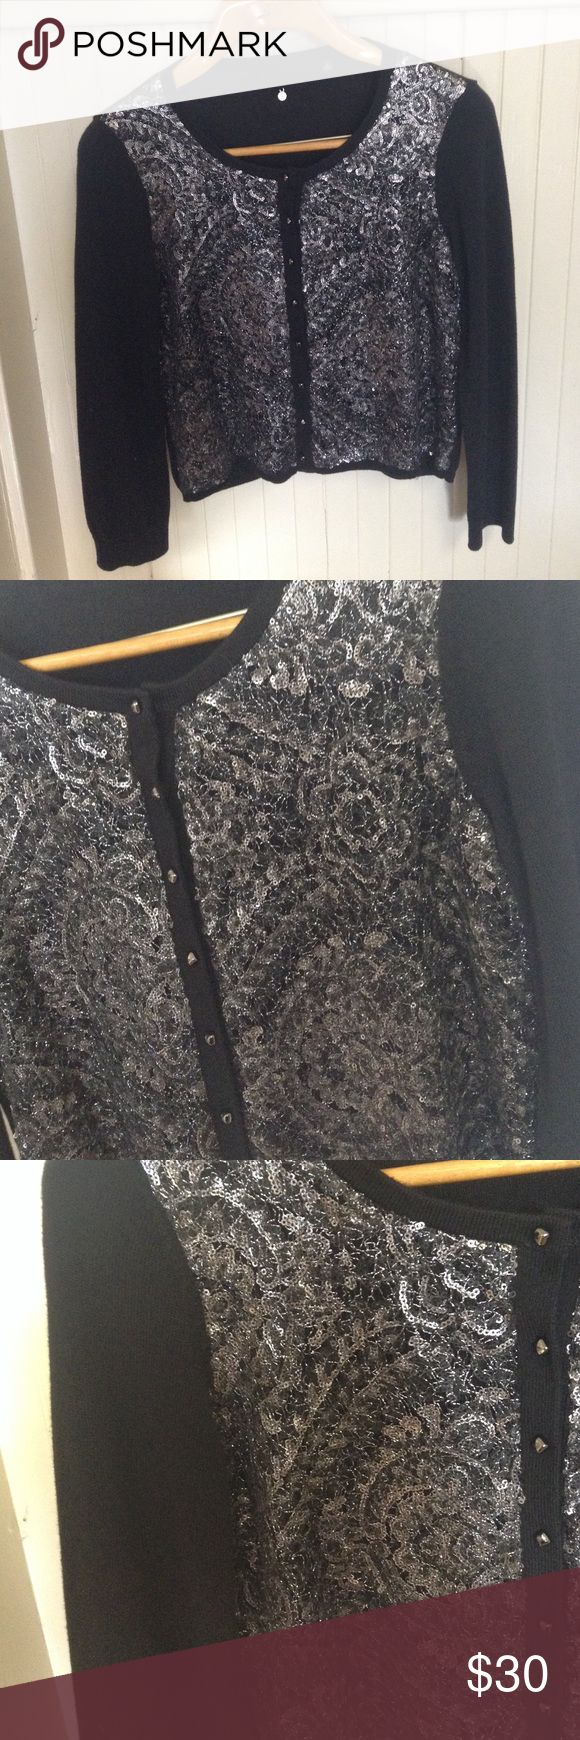 Knitted & Knotted Sequin Cardigan Sweater Gently used, no flaws. Black cardigan with silver sequins and knit on front. By the brand Knitted & Knotted. Beautiful 💖 Anthropologie Sweaters Cardigans